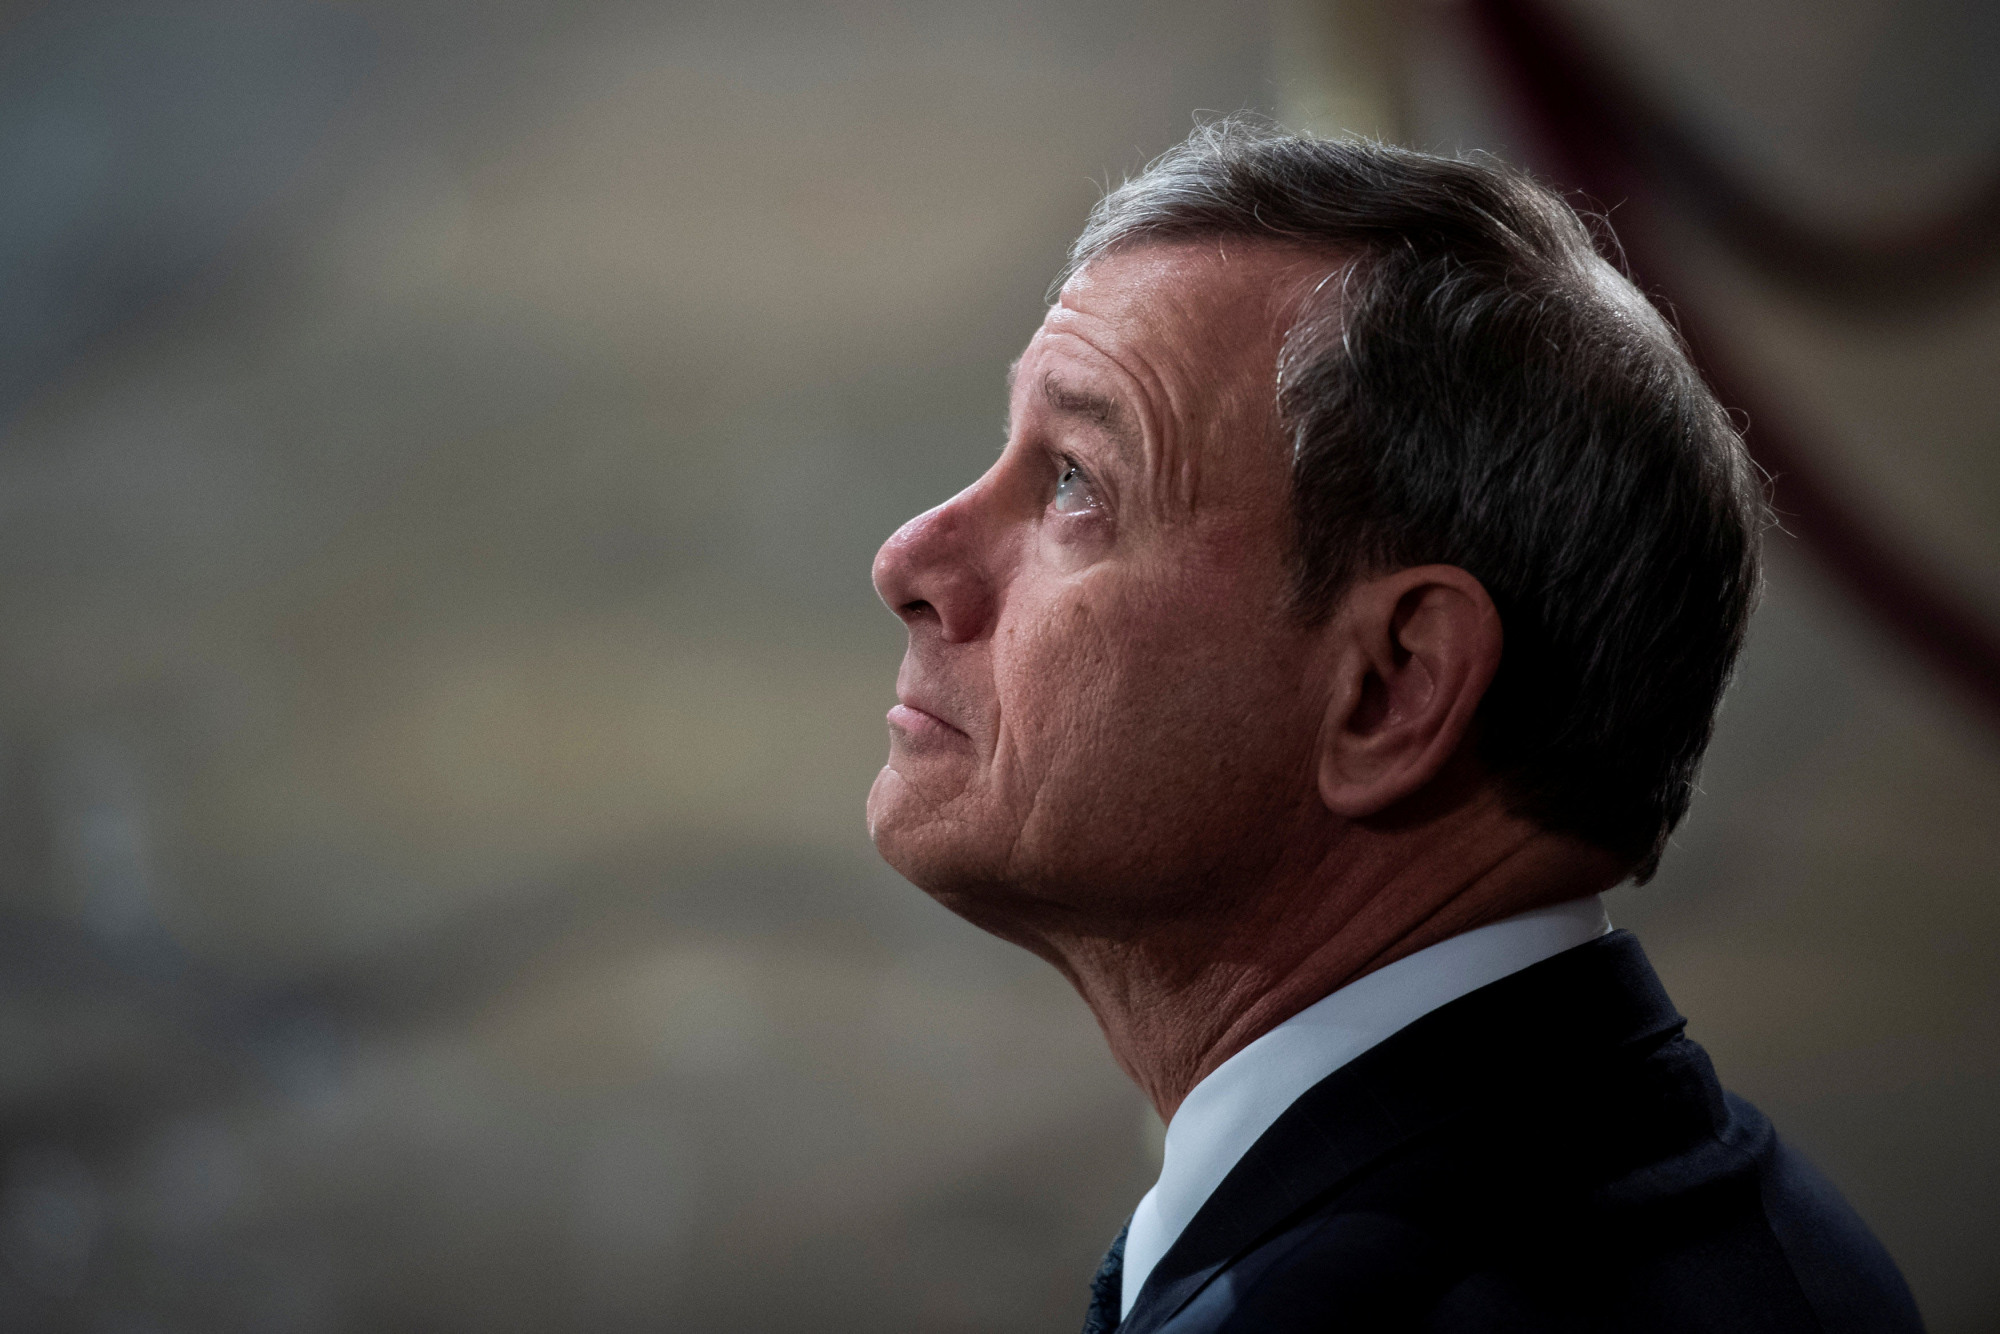 Supreme Court Chief Justice John G. Roberts waits for the arrival of former President George H.W. Bush to lie in state at the U.S. Capitol Rotunda on Dec. 3. | POOL / VIA REUTERS